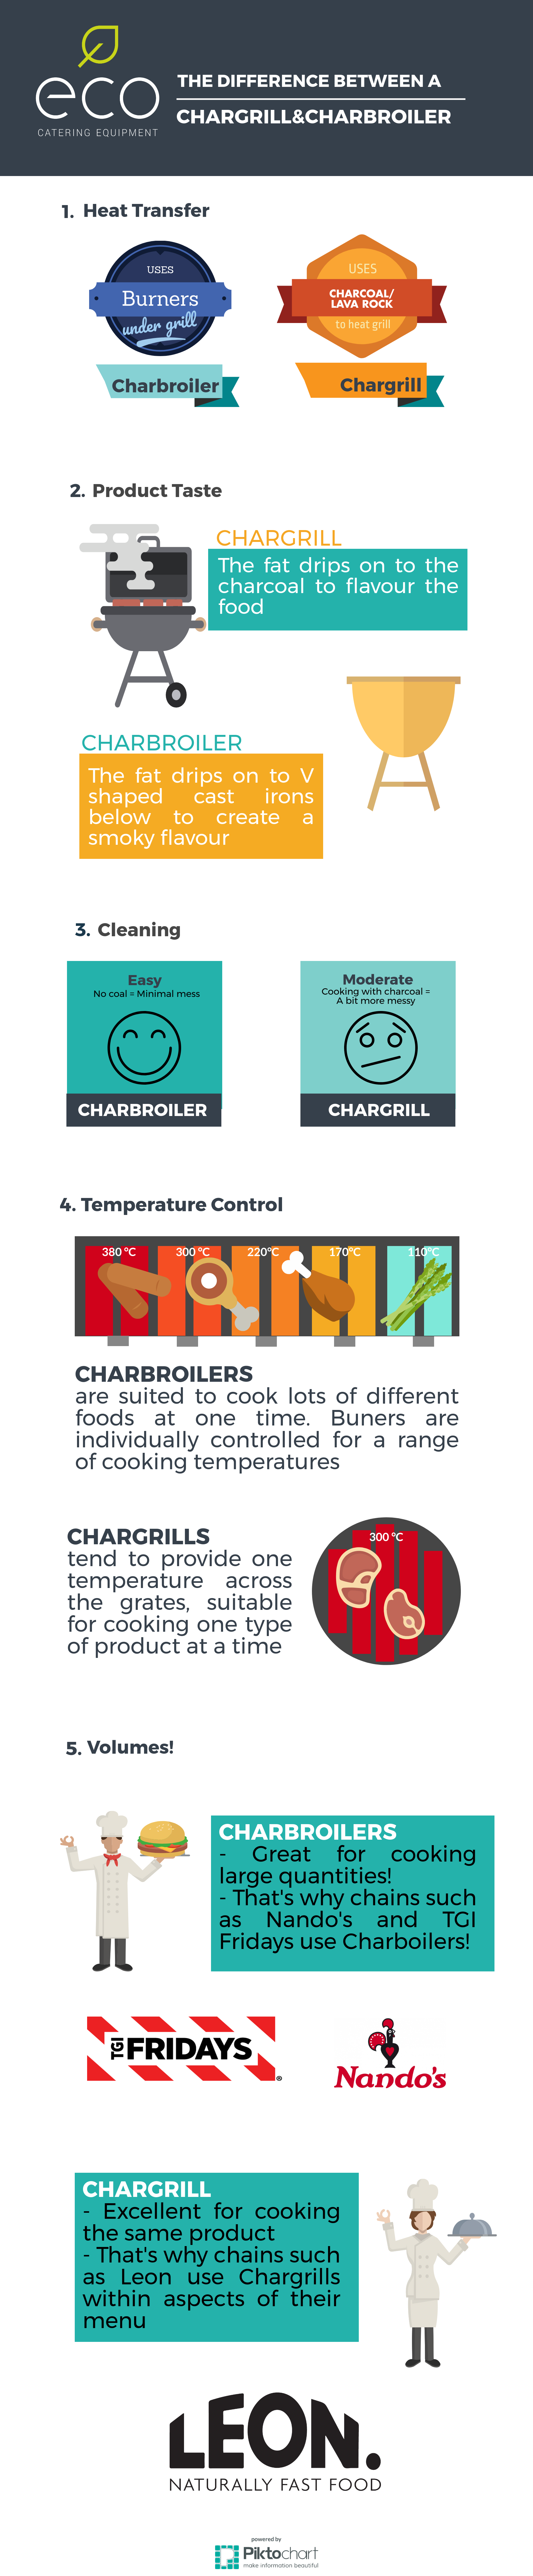 The difference between a chargrill and a charbroiler